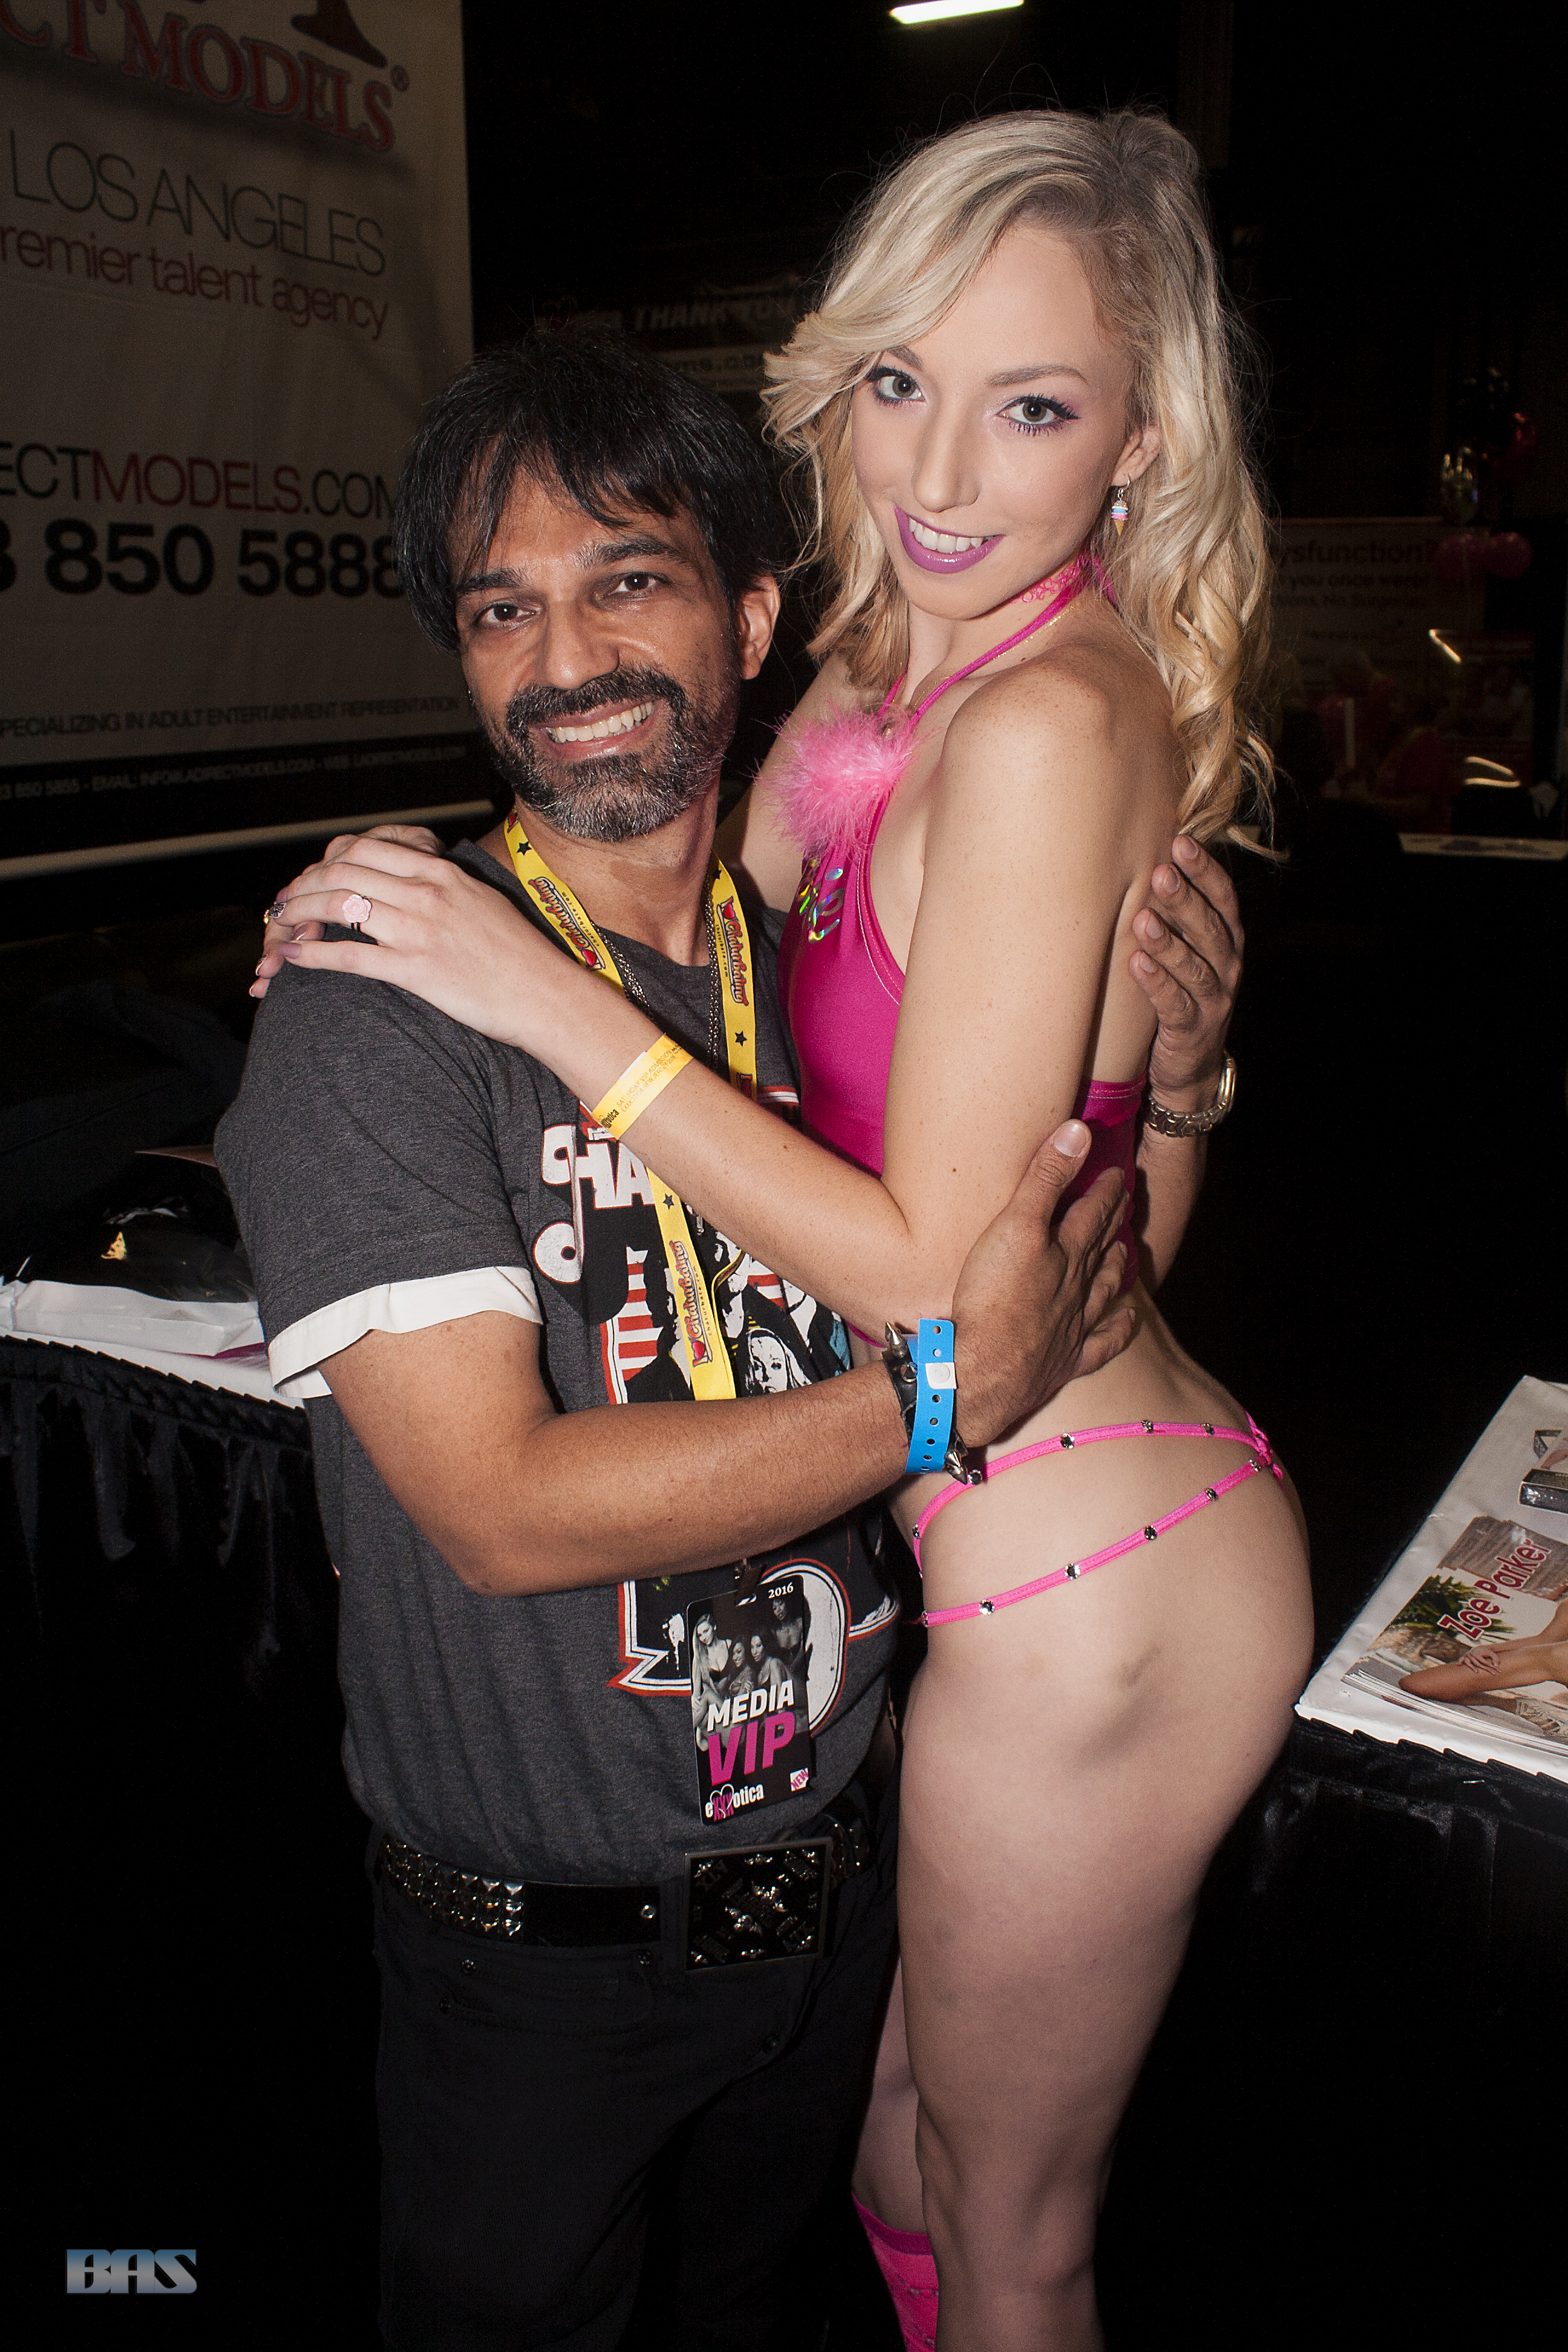 File:Master Gio and Zoe Parker at Exxxotica New Jersey 2016  (30683877434).jpg - Wikimedia Commons